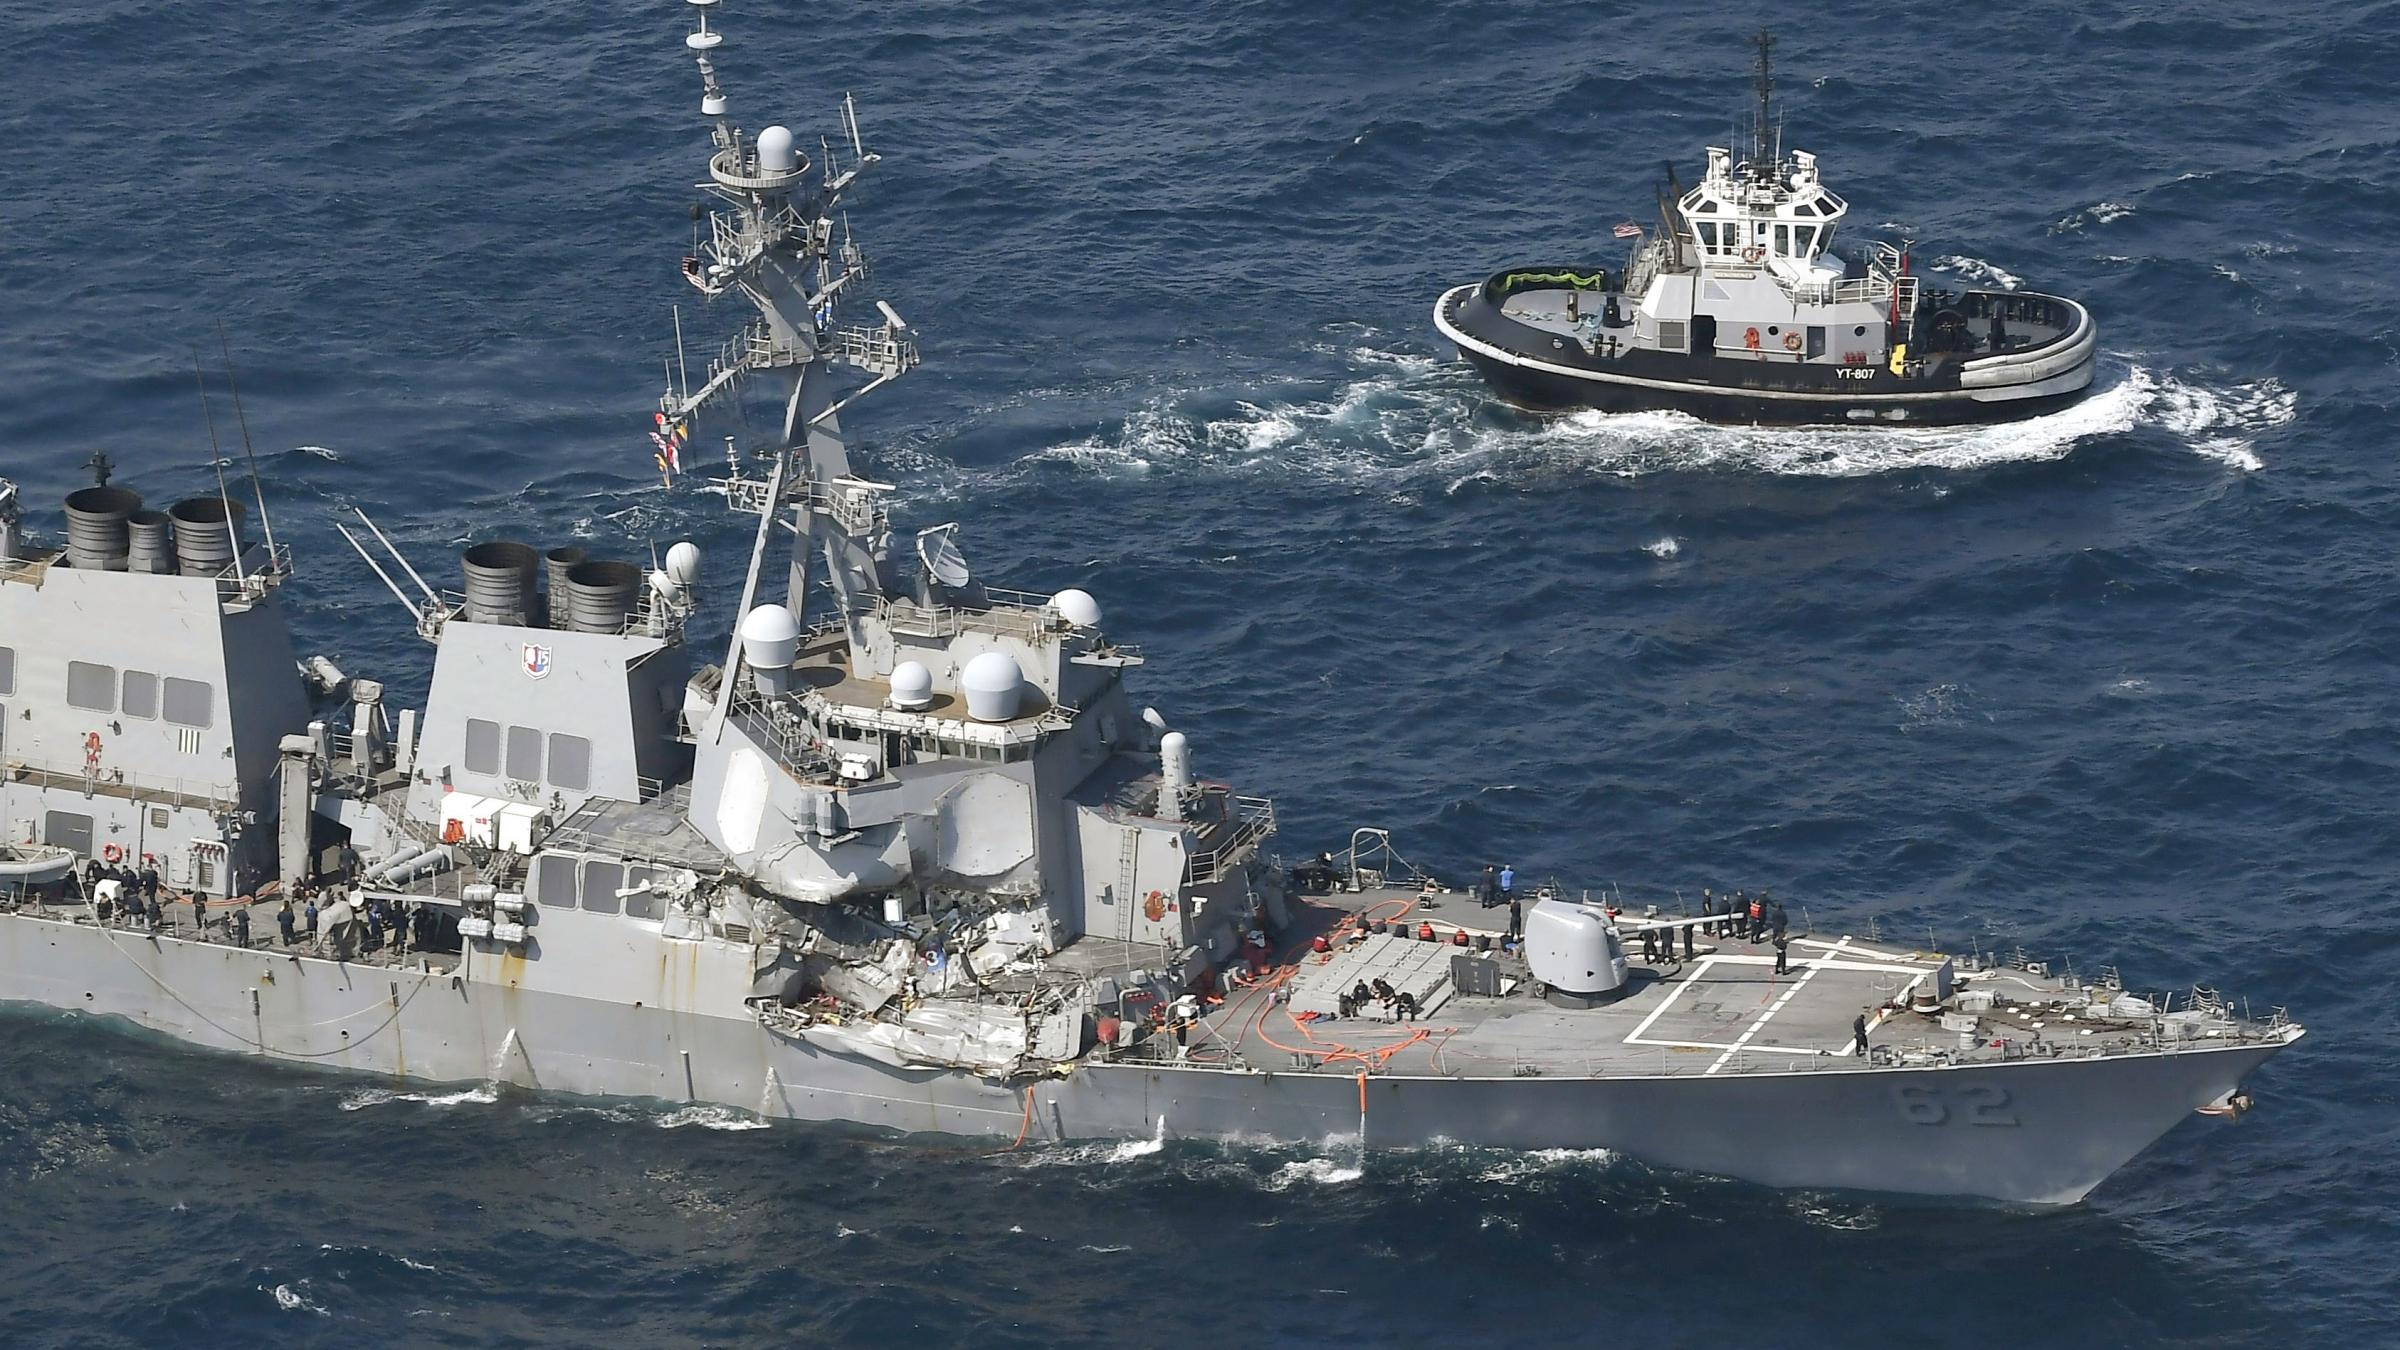 Search for seven sailors after US destroyer damaged in container ship collision